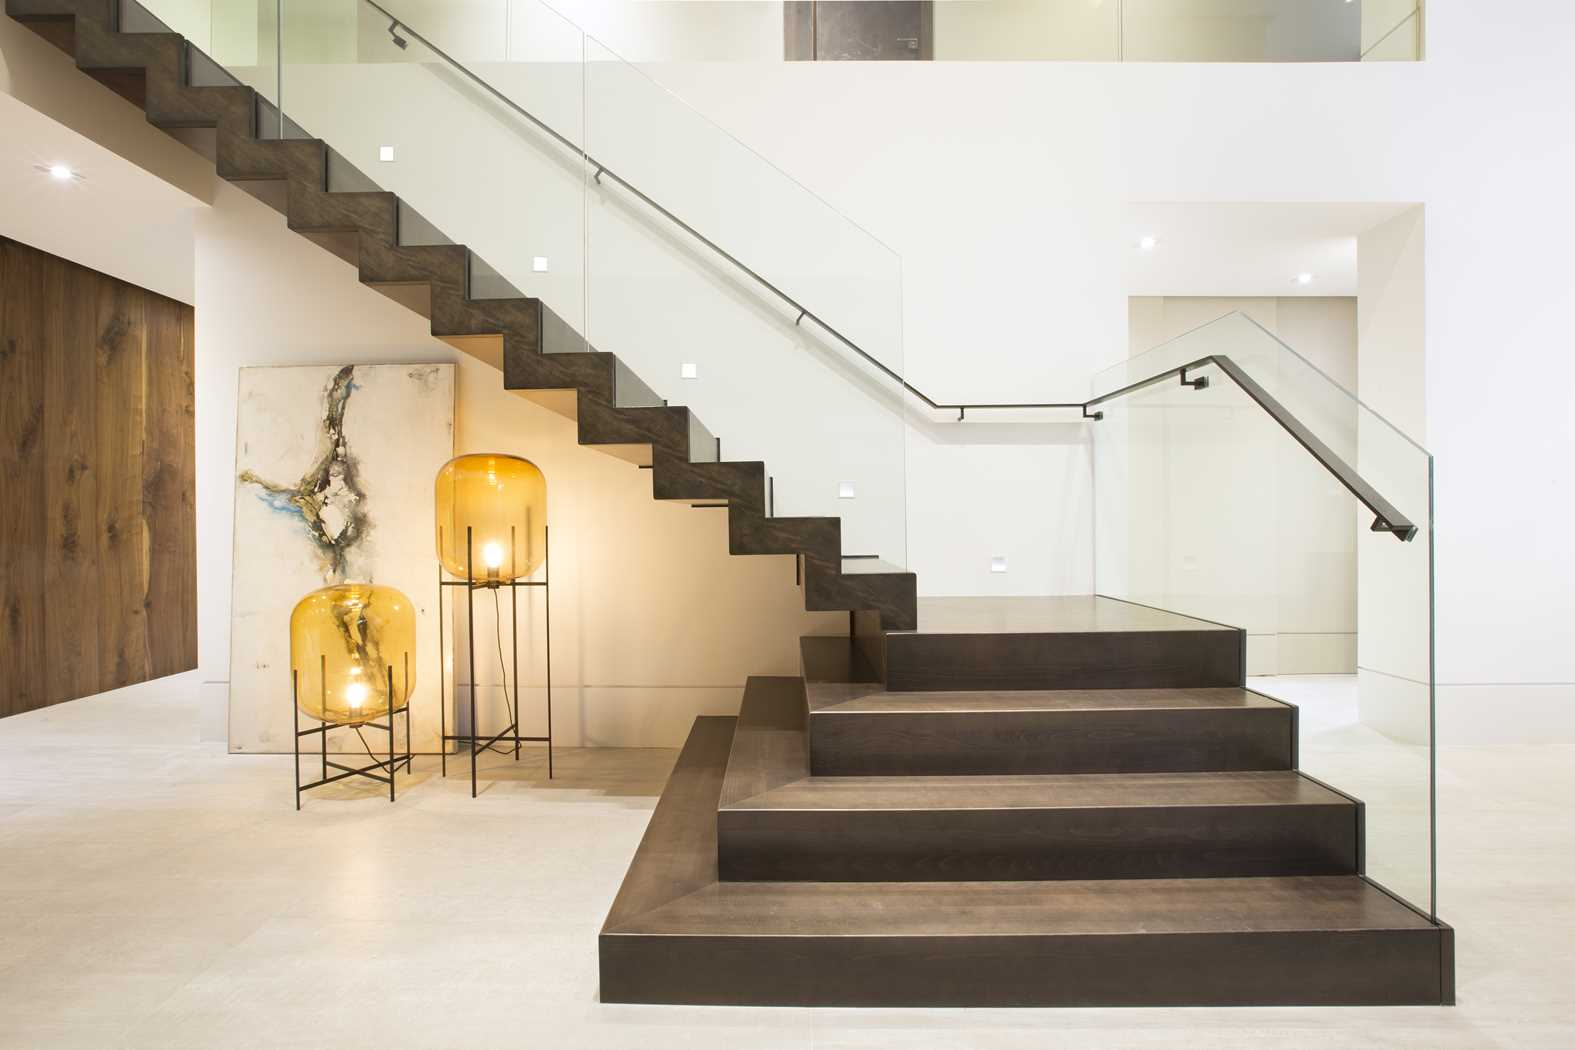 25 Best Ideas About Modern Staircase On Pinterest: 12 Modern Staircases And Railings